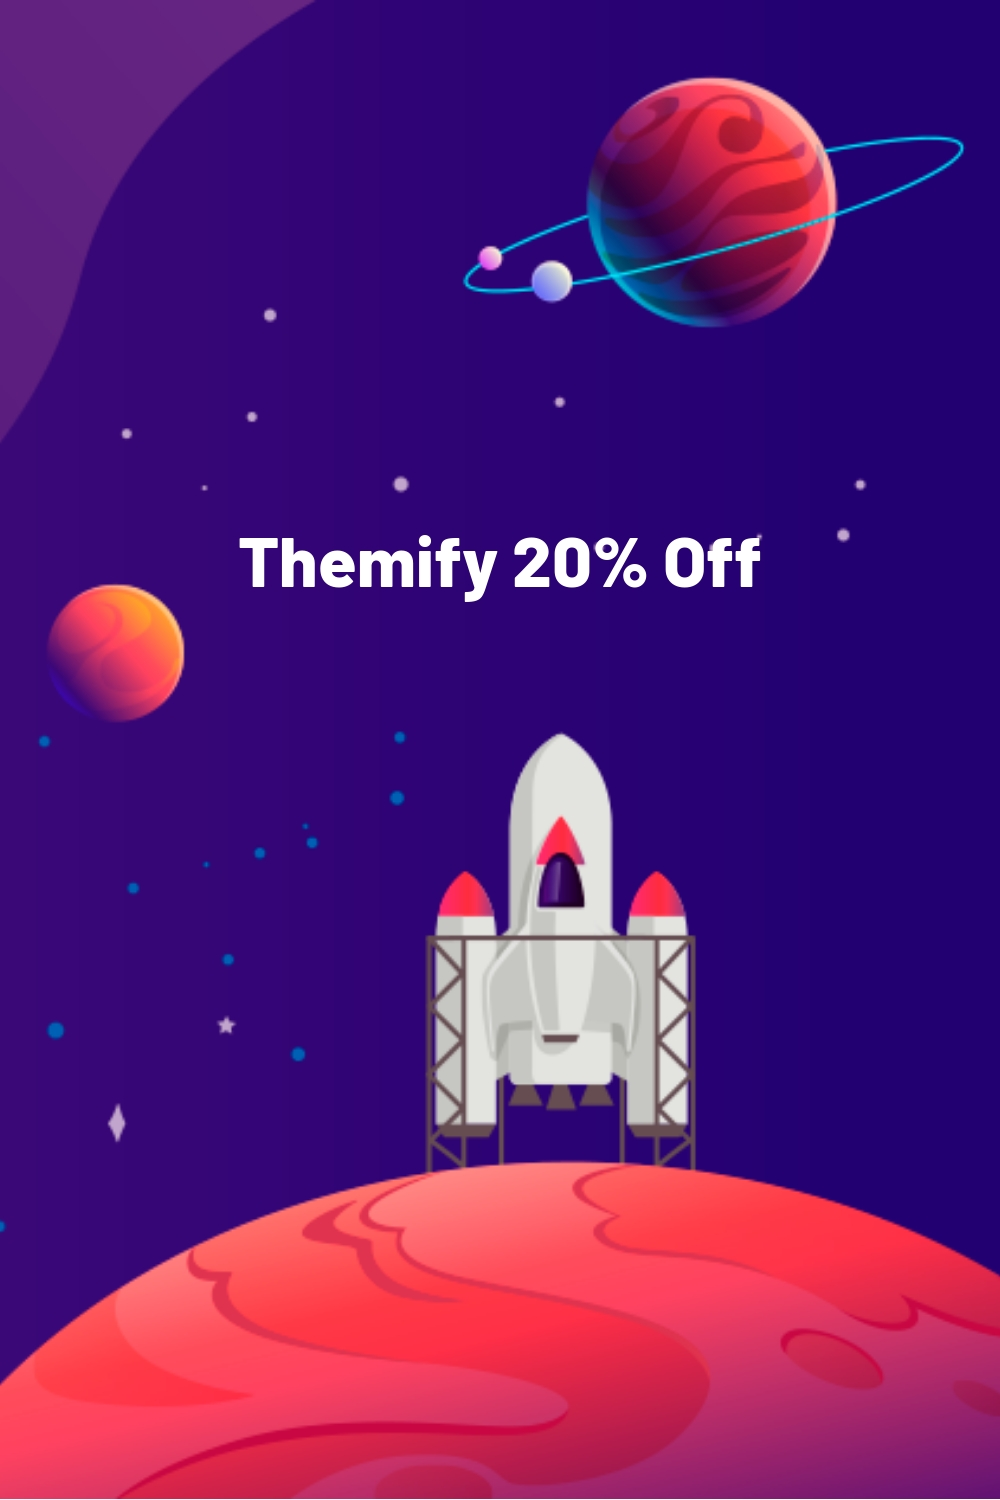 Themify 20% Off